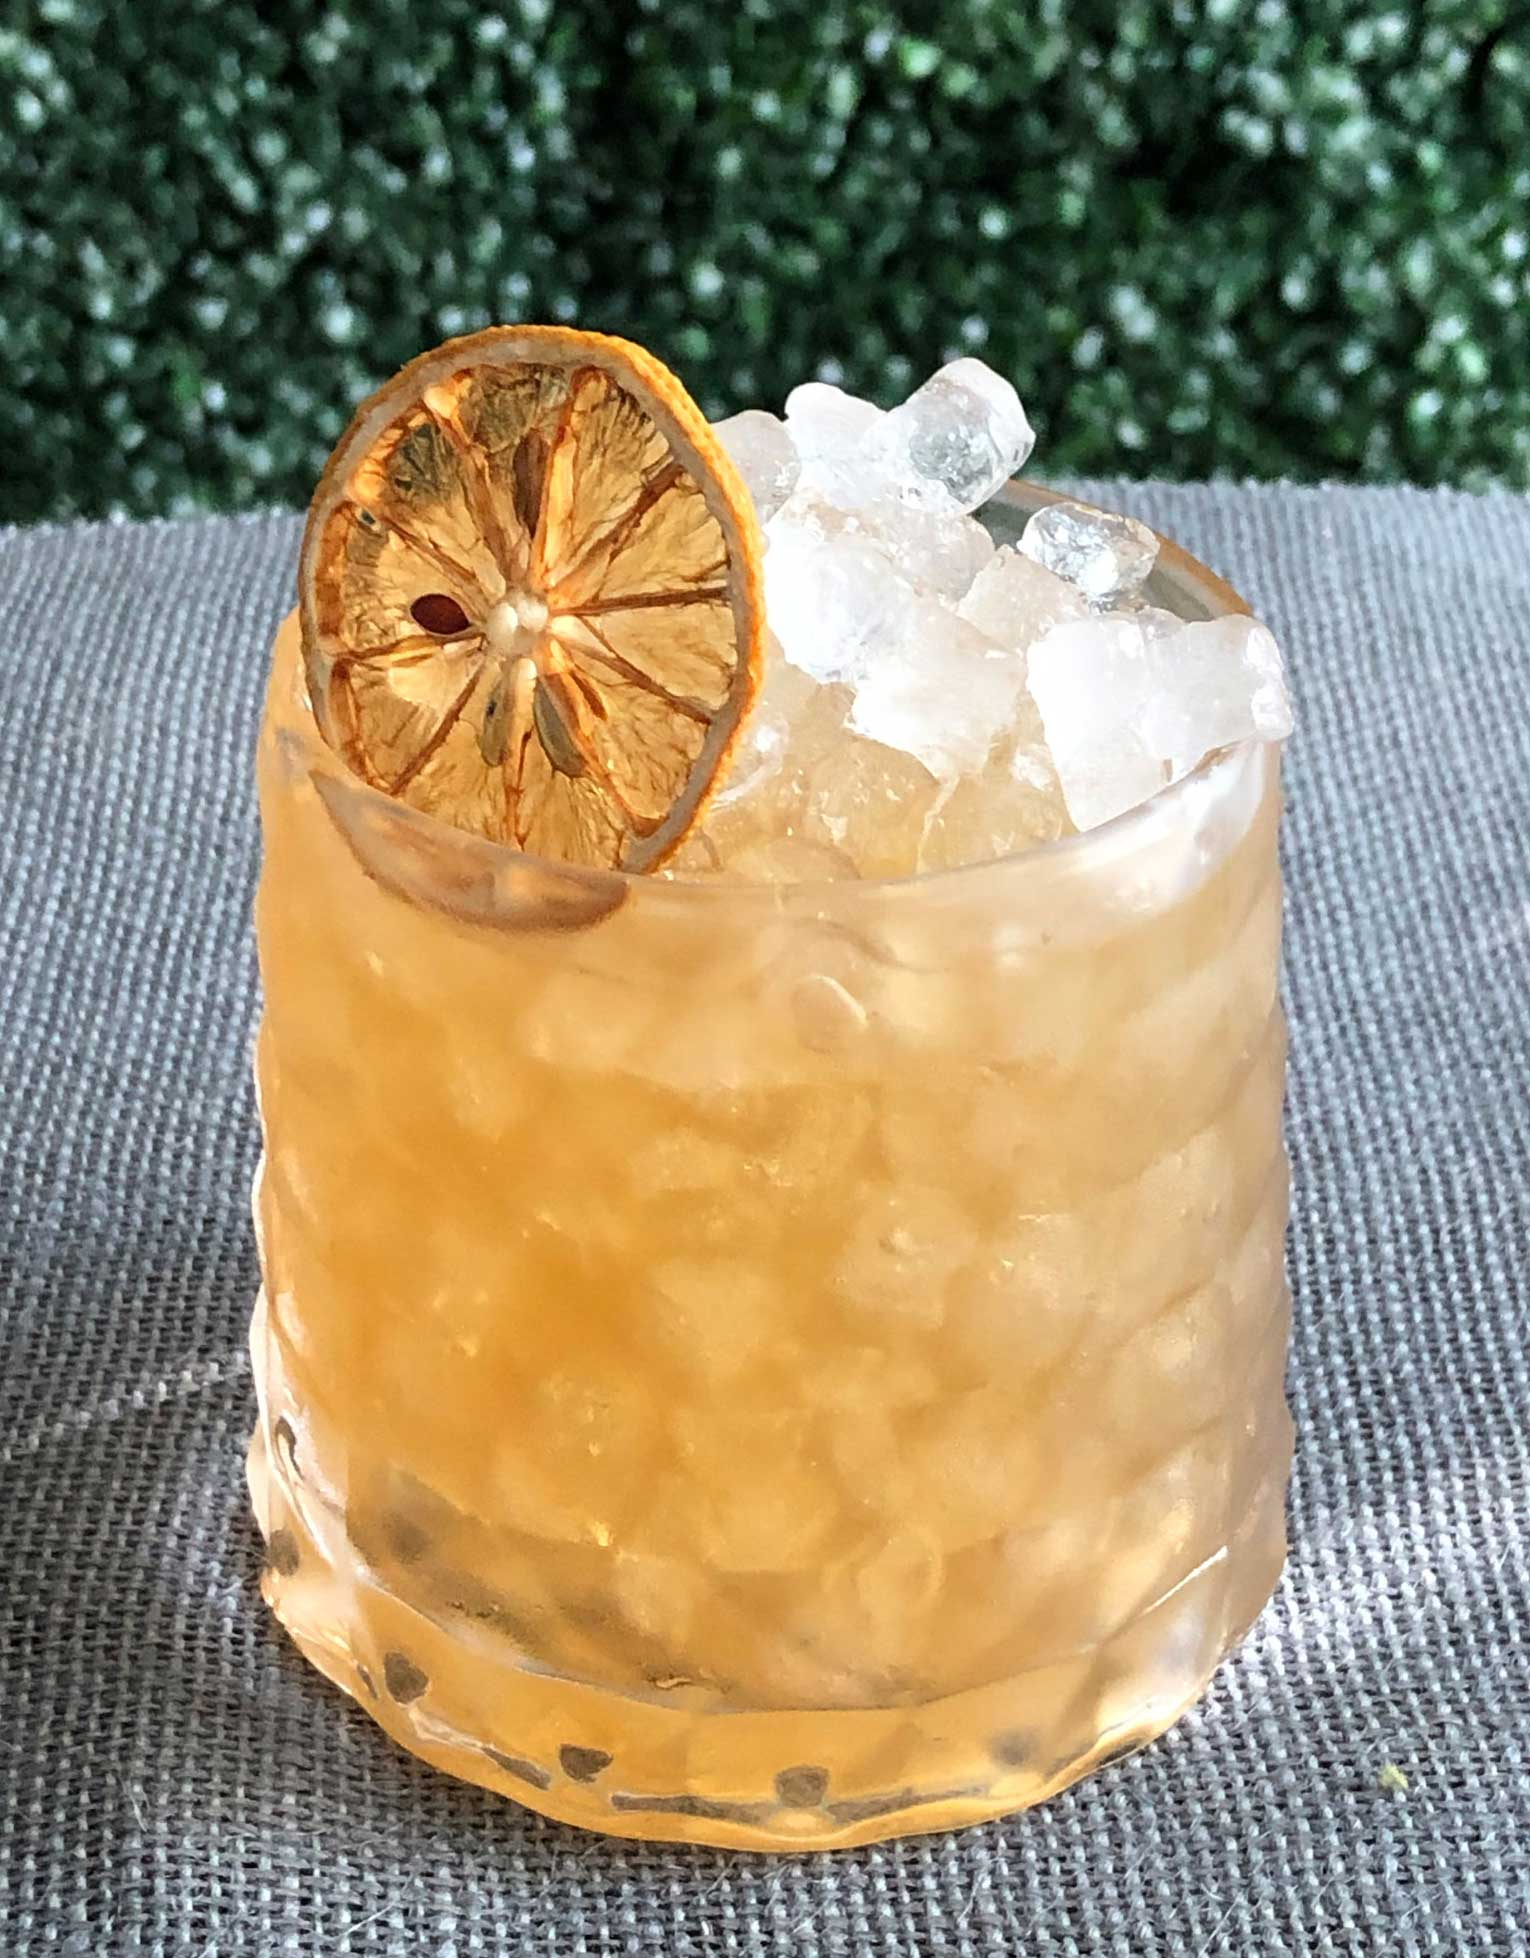 An example of the Crampon Sour, the mixed drink (sour) featuring Amaro Alta Verde, Bonal Gentiane-Quina, simple syrup, and lemon juice; photo by Lee Edwards